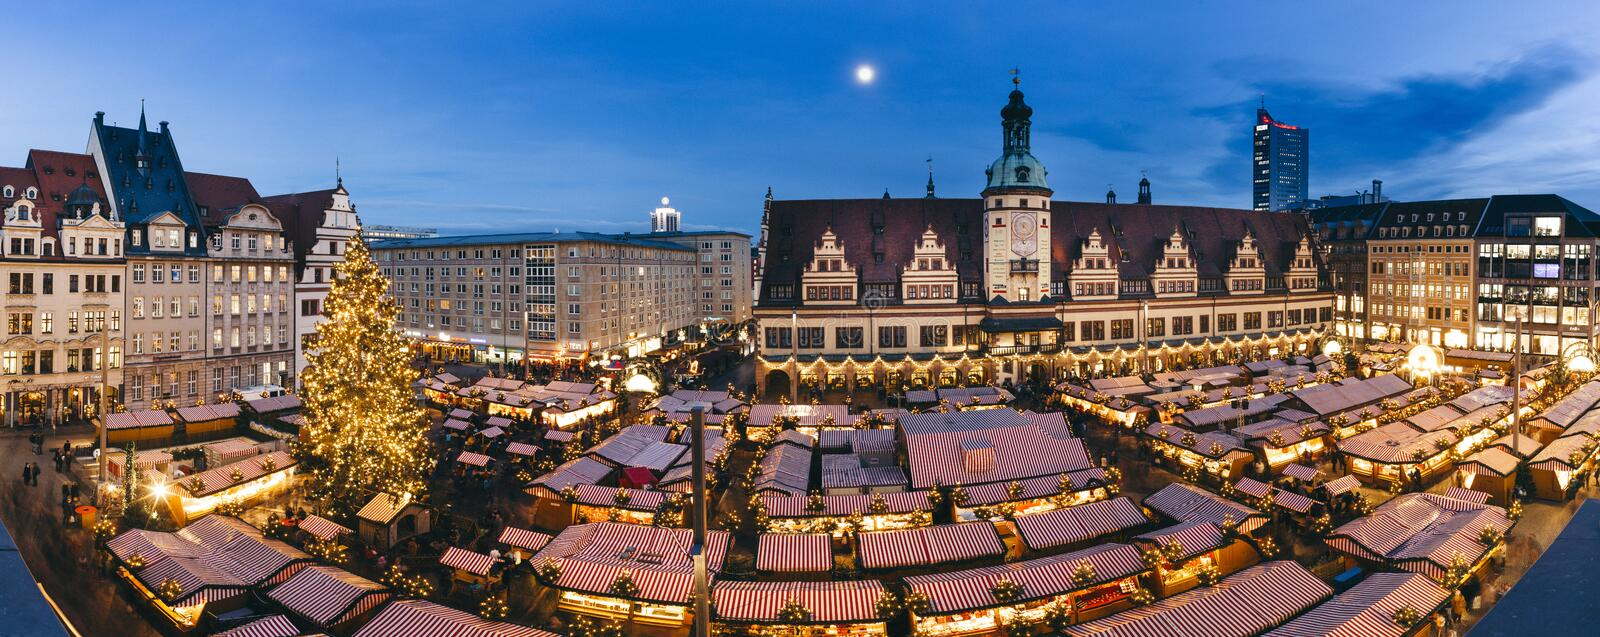 Central square of Leipzig, Germany, with Christmas market stock photo